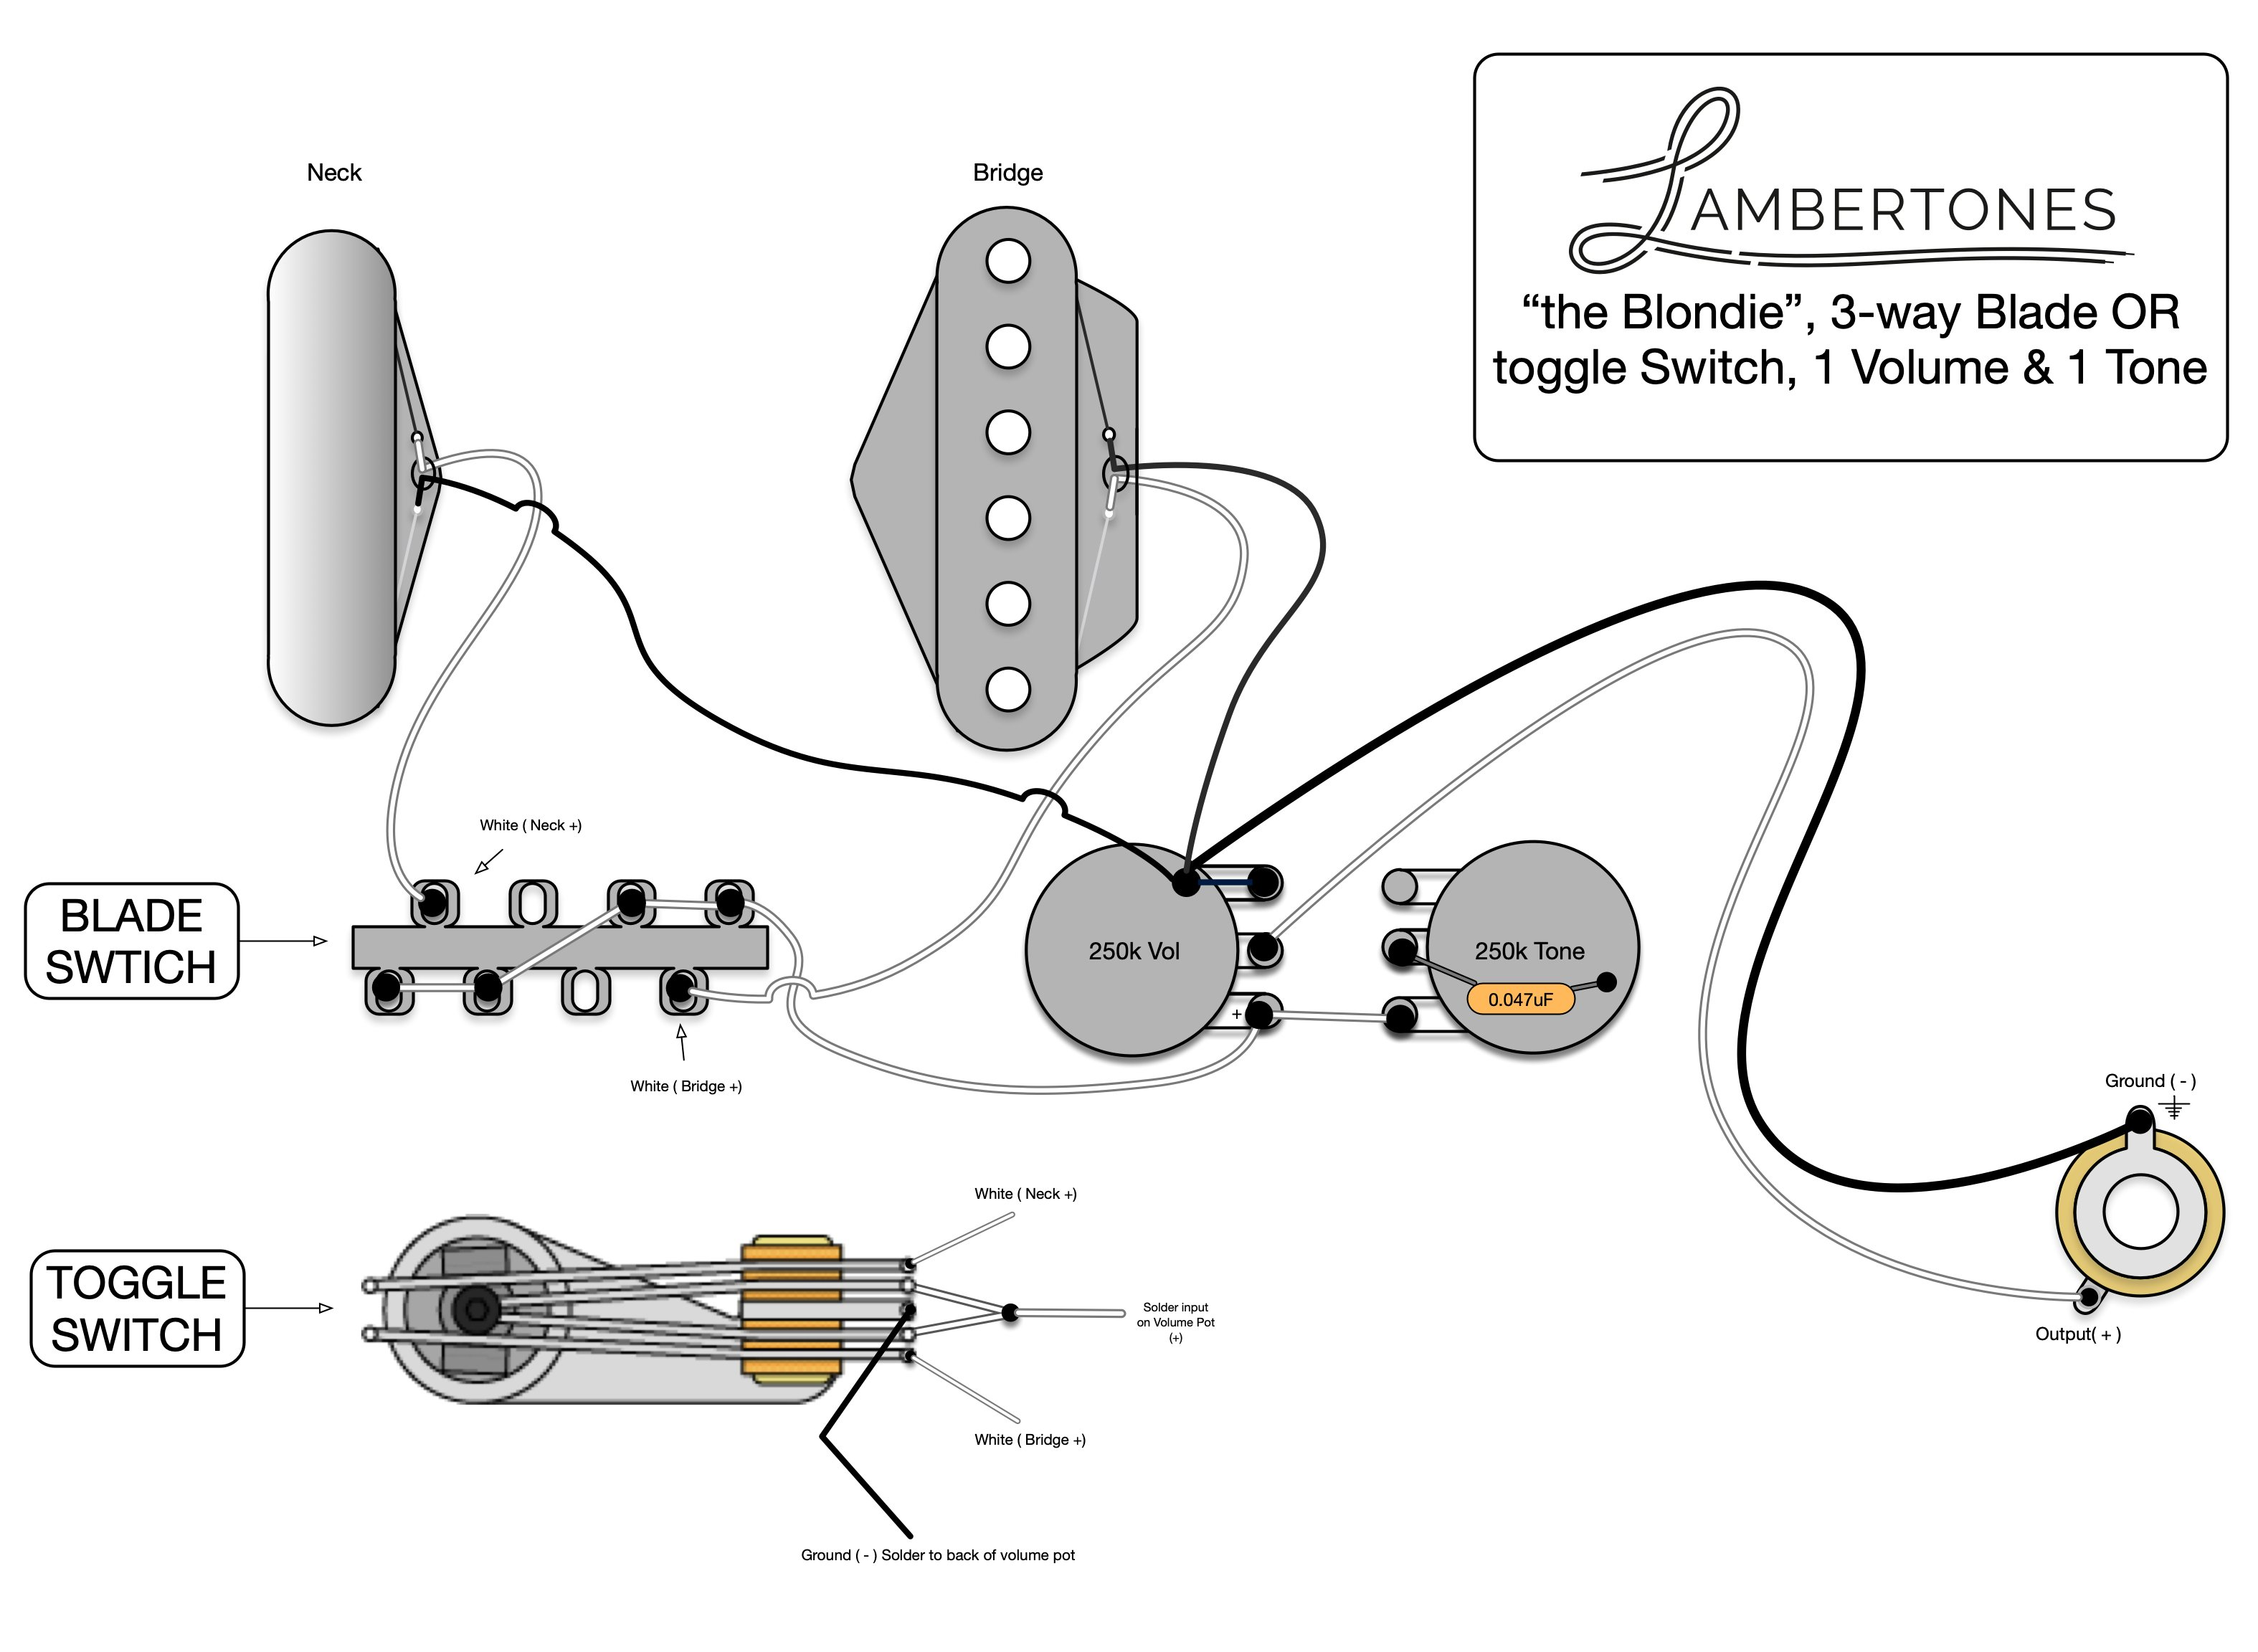 Telecaster Series Wiring Using A 3 Way Switch Diagram from cdn.shopify.com